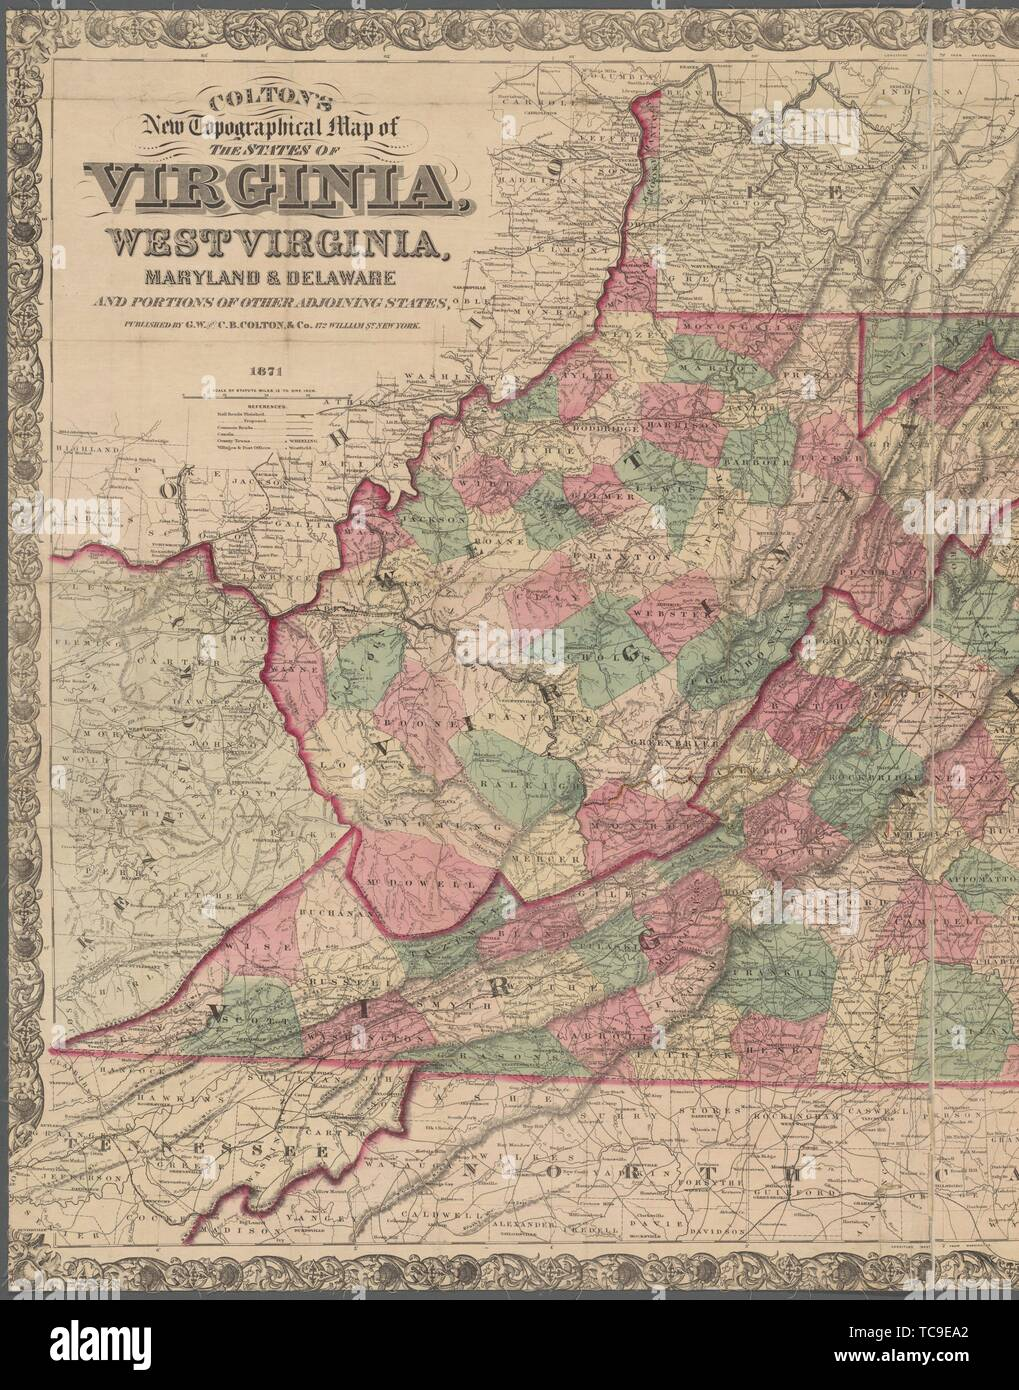 Picture of: Colton S New Topographical Map Of The States Of Virginia West Virginia Maryland Delaware And Portions Of Other Adjoining States G W C B Stock Photo Alamy